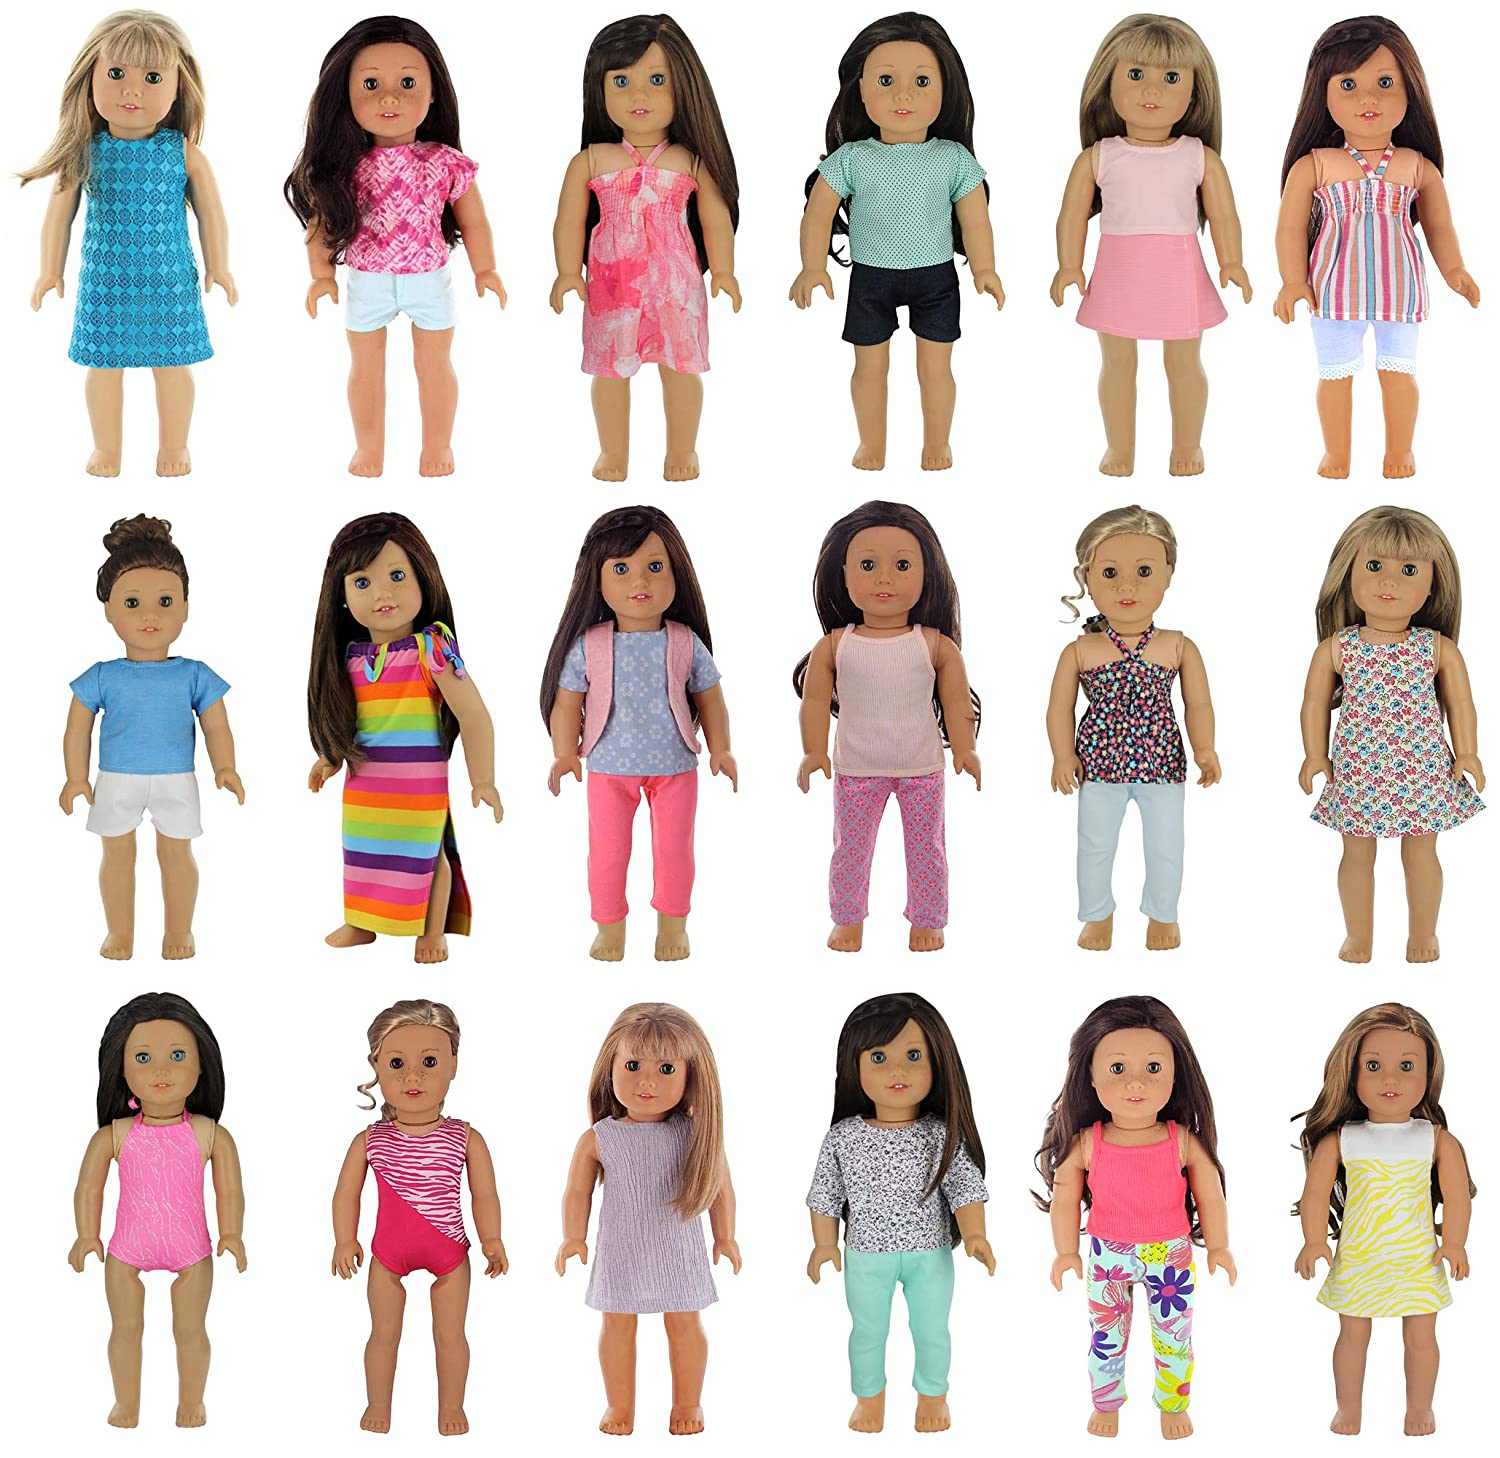 PZAS Toys 18 Outfit Set, Compatible with American Girl Doll Clothes and Other 18 Inch Doll Clothes